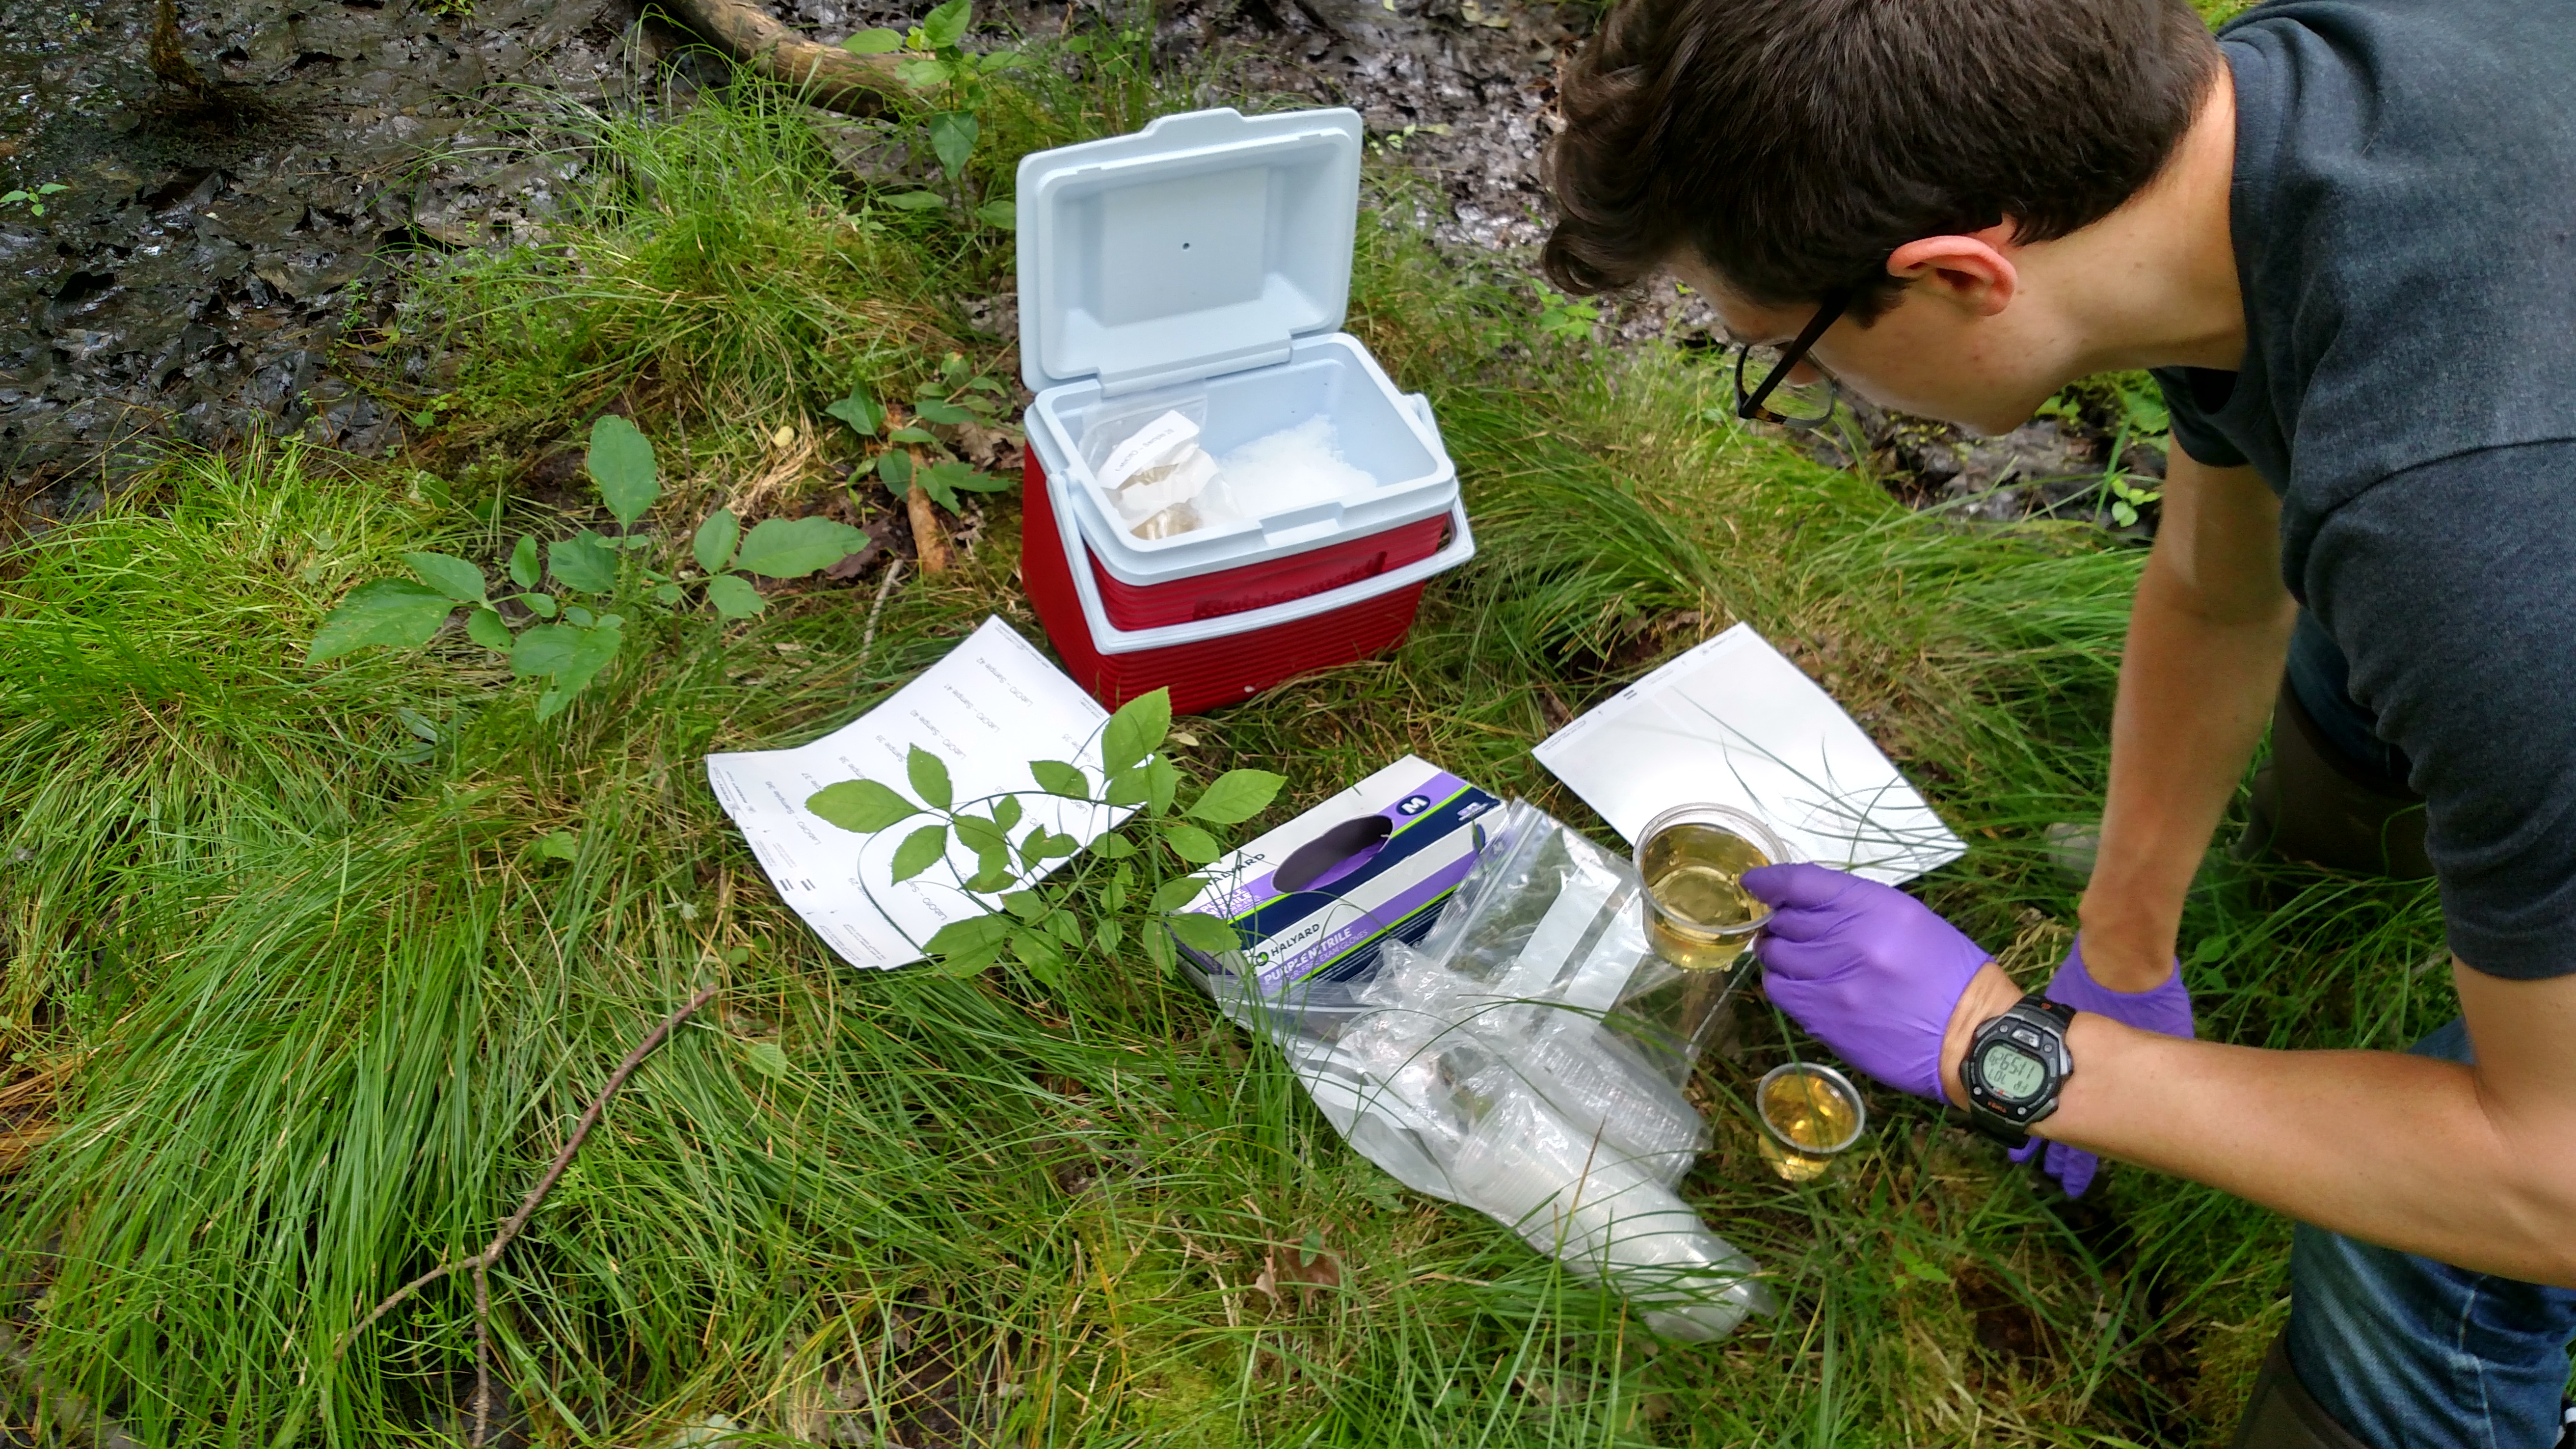 Cataloging samples in the field